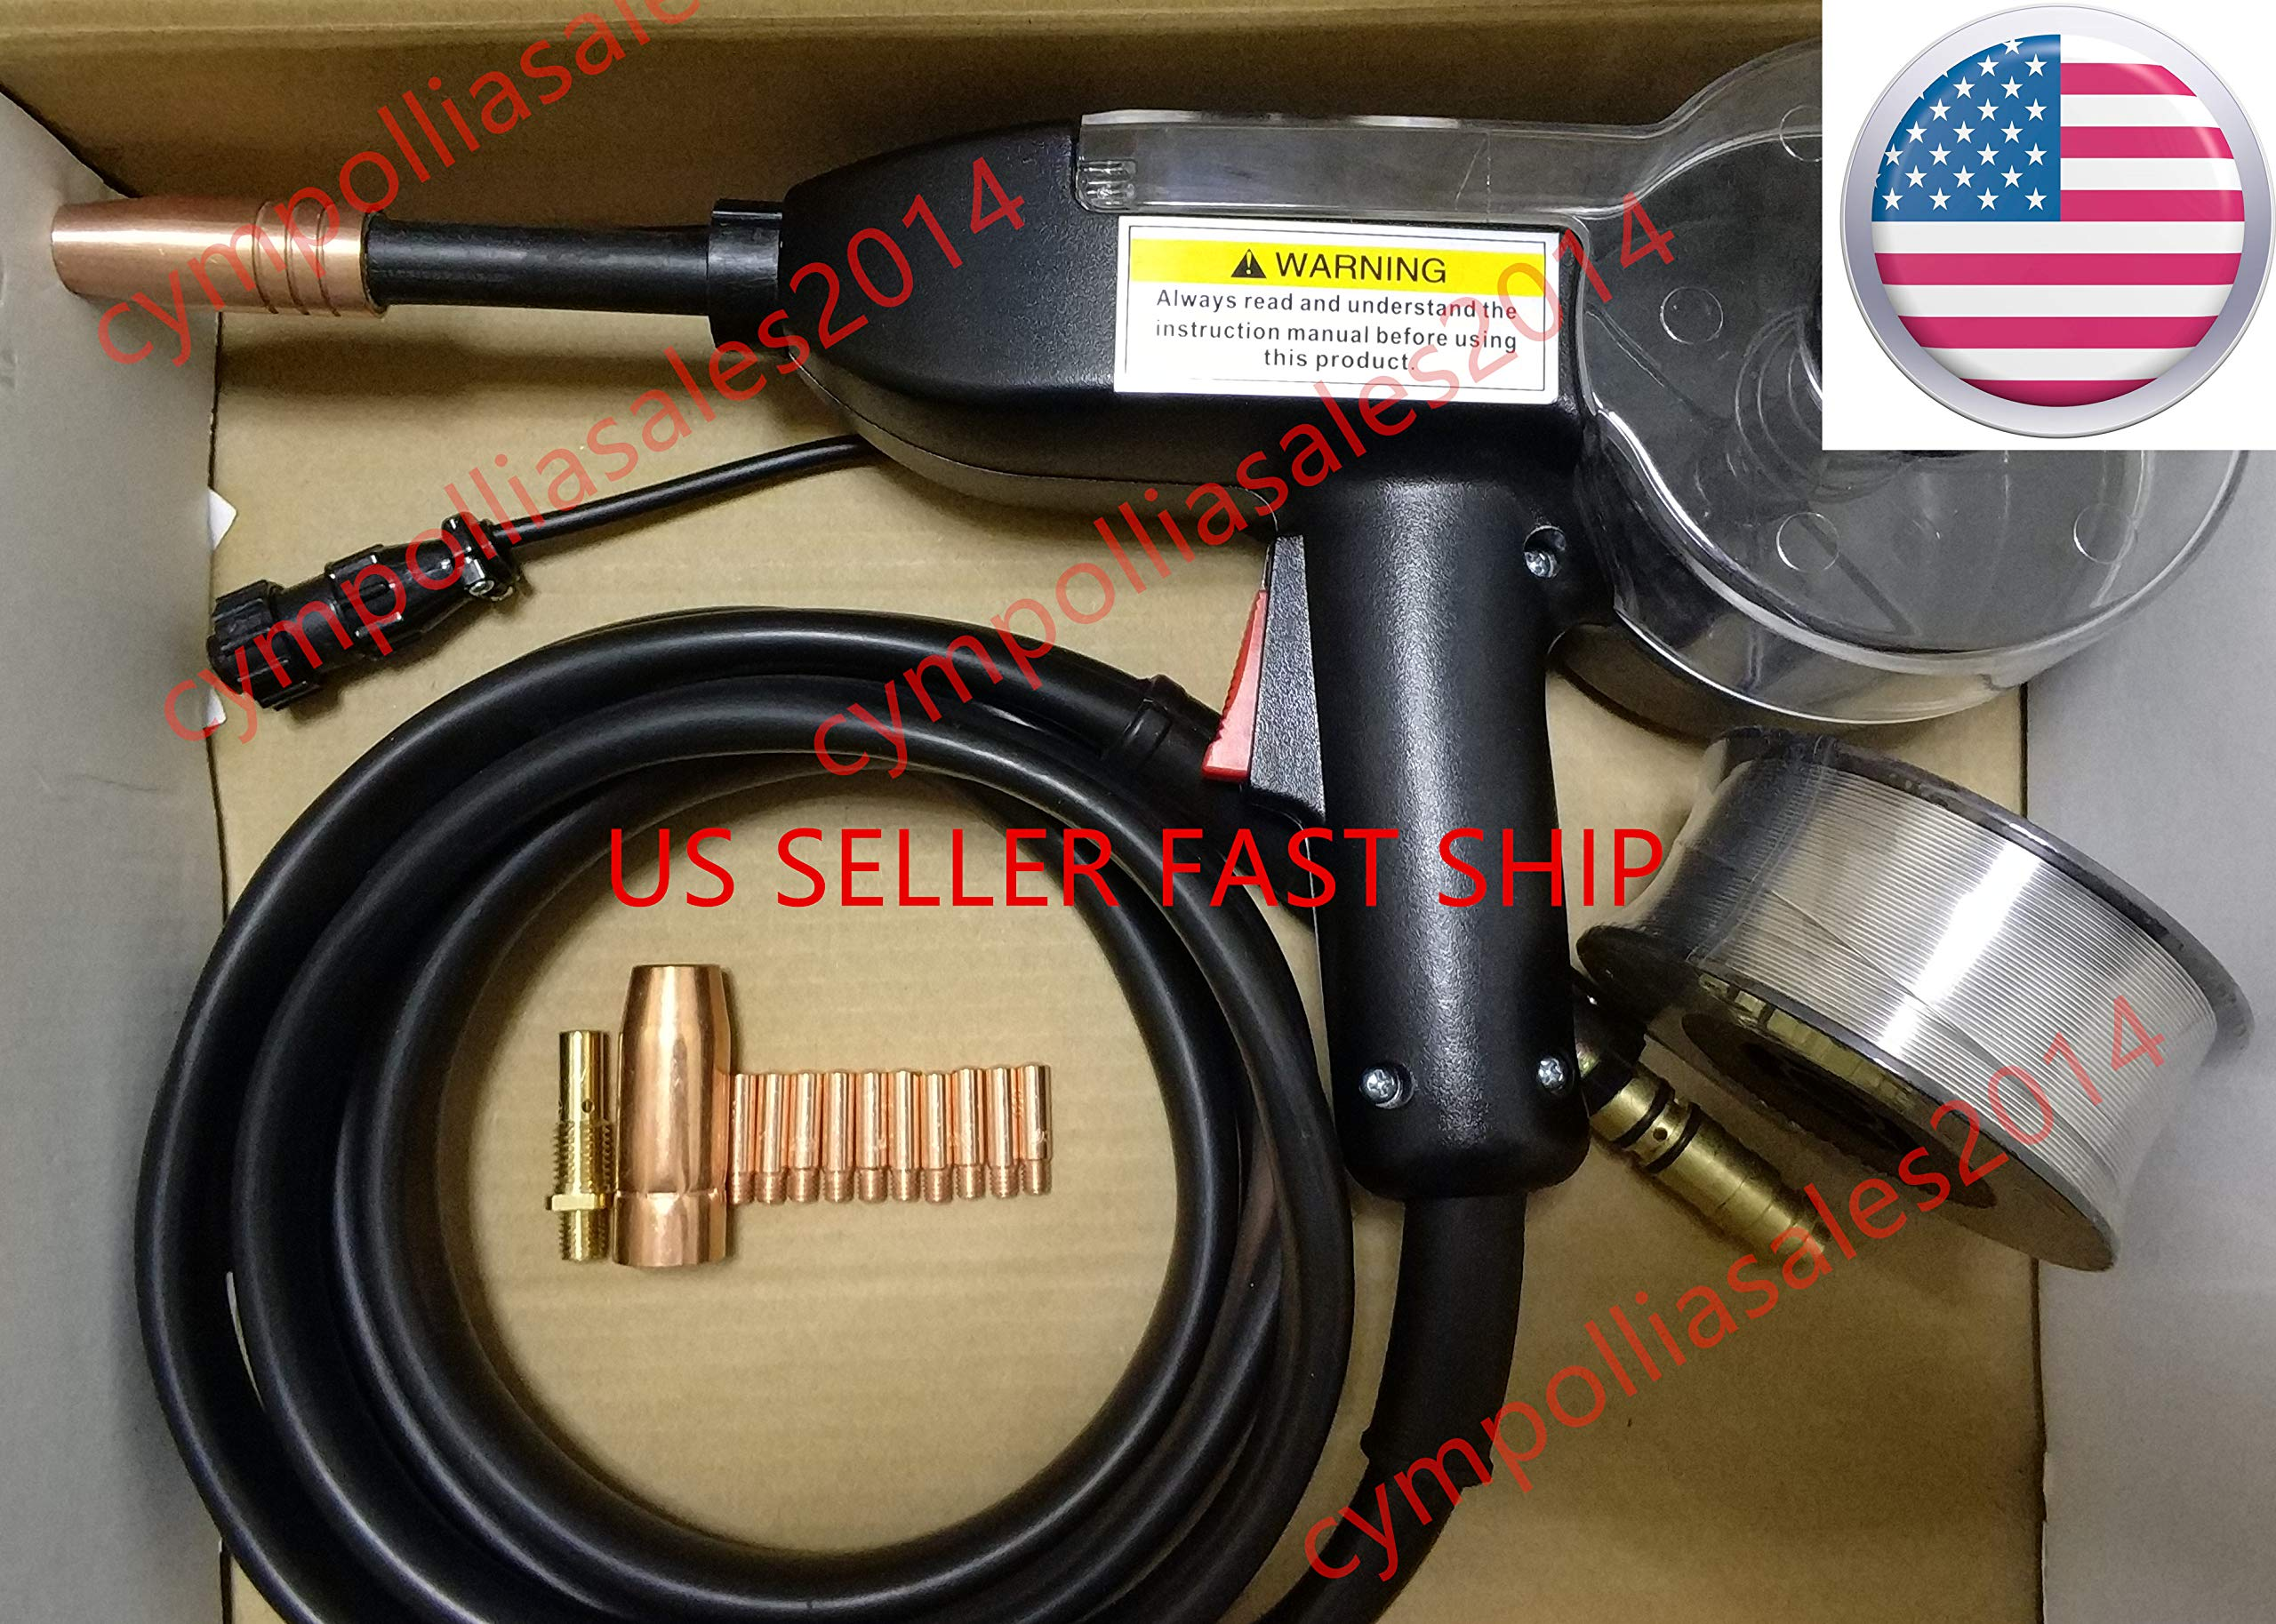 US SELLER 10' Spool gun replace Magnum PRO 100SG Spool Gun fit LINCOLN Easy-mig 140/180,Mig pak 140/180,Pro-mig 140/140T/180, Weld-pak 140HD/180HD(ETA: 2-8 working days) by CYMPOLLIA2016